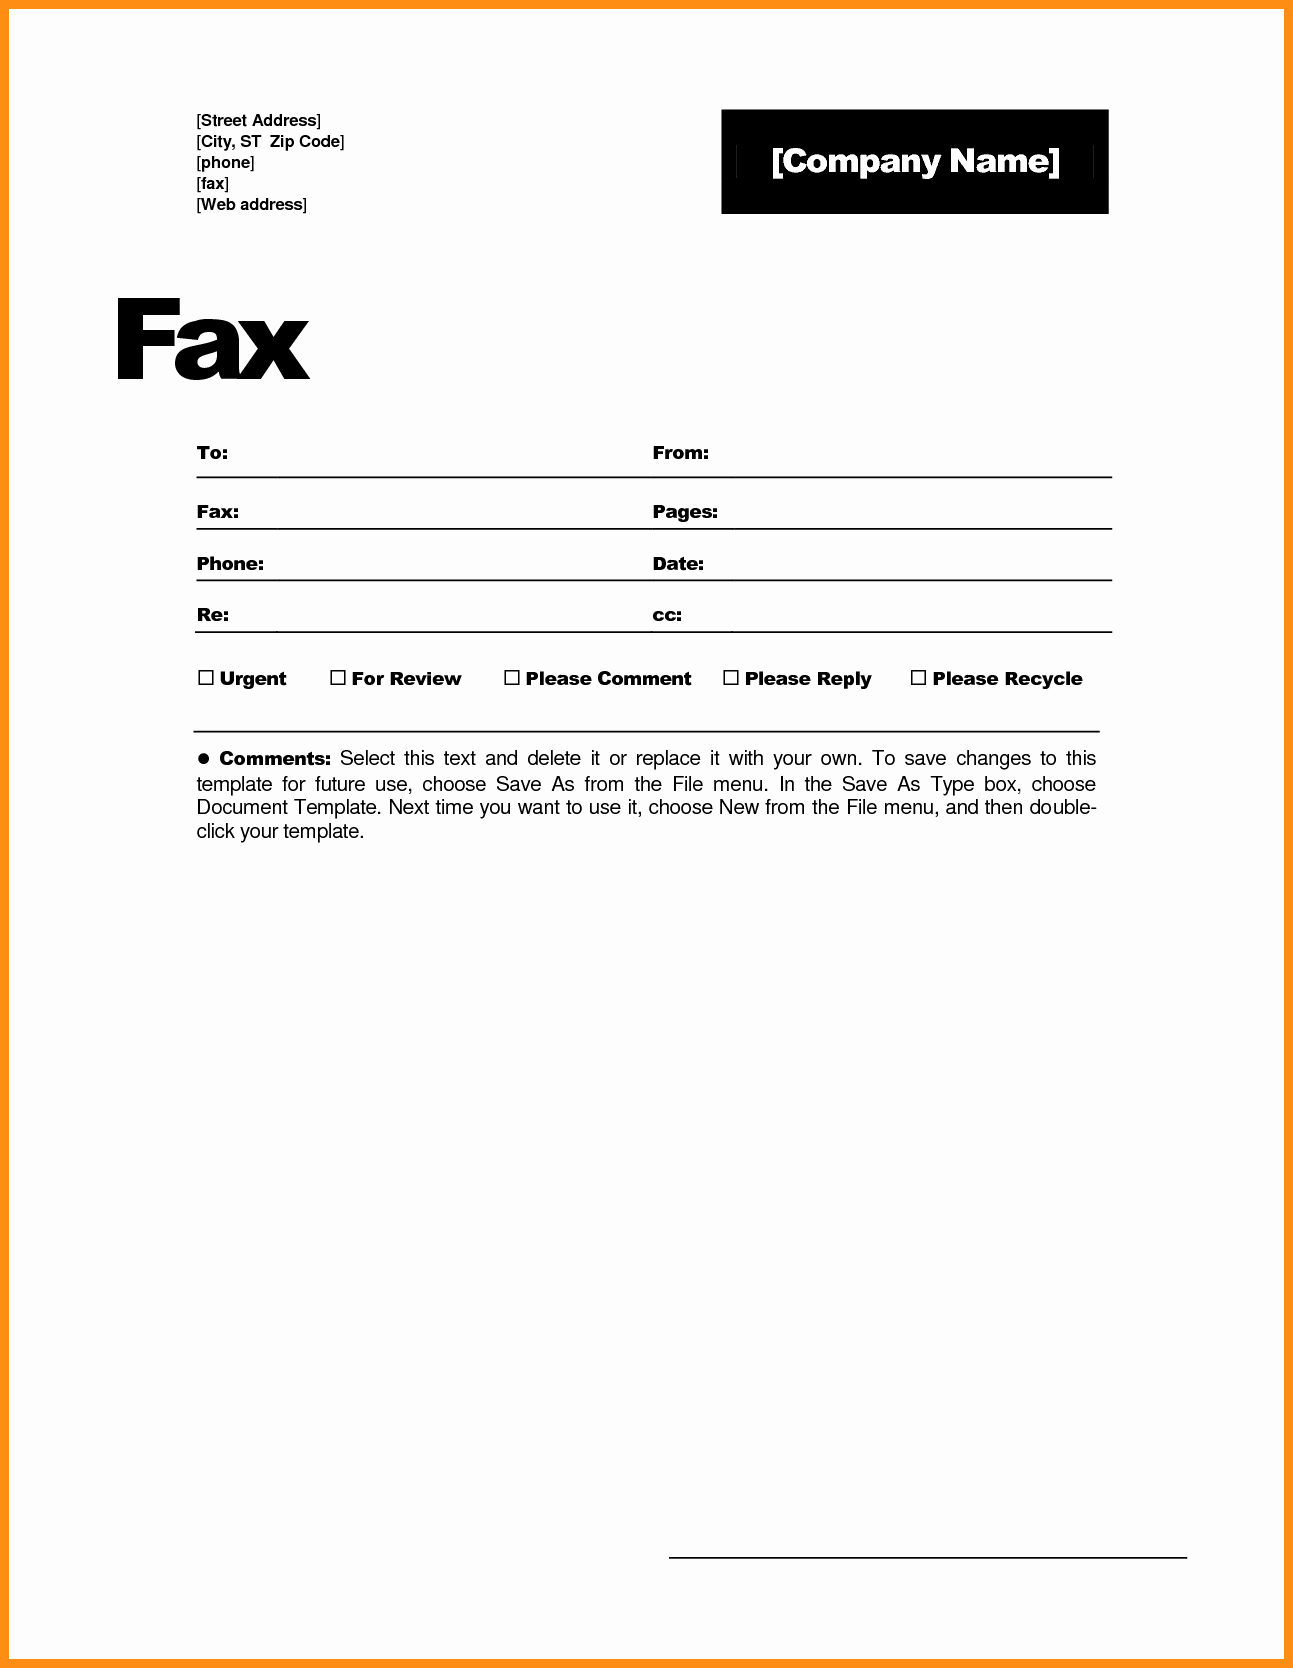 Free Fax Cover Sheets Download Elegant 6 Free Fax Cover Sheet Template Word